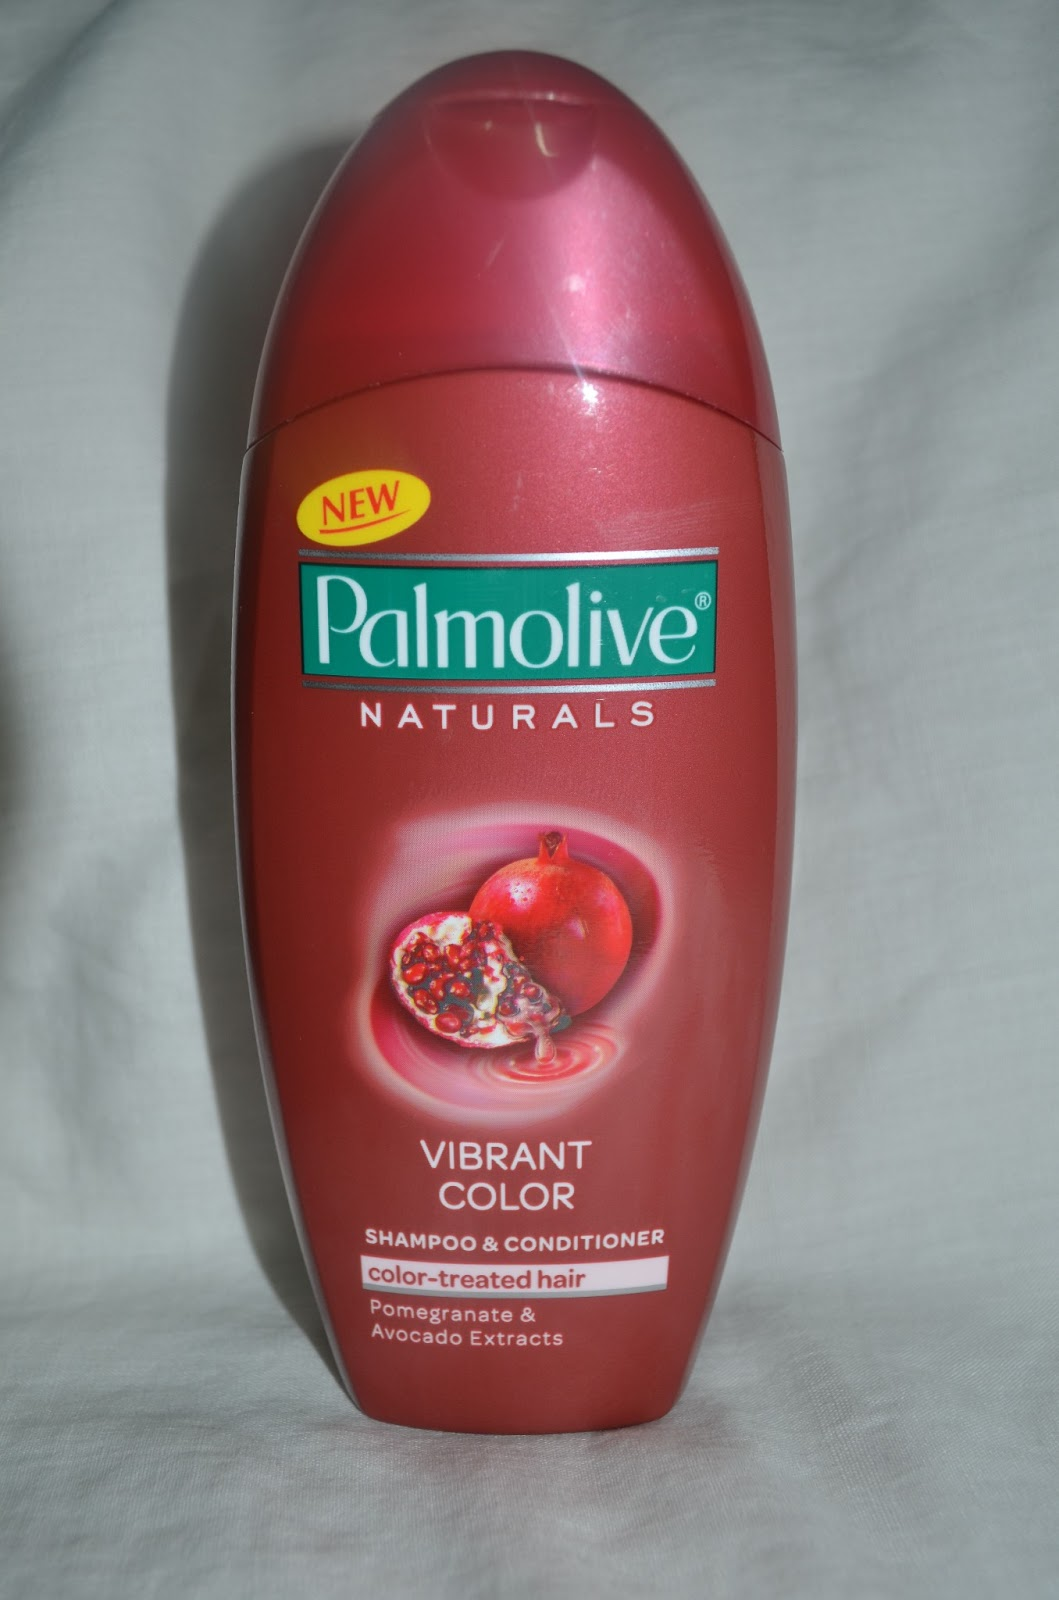 Glamournix Review Palmolive Naturals Vibrant Color Shampoo